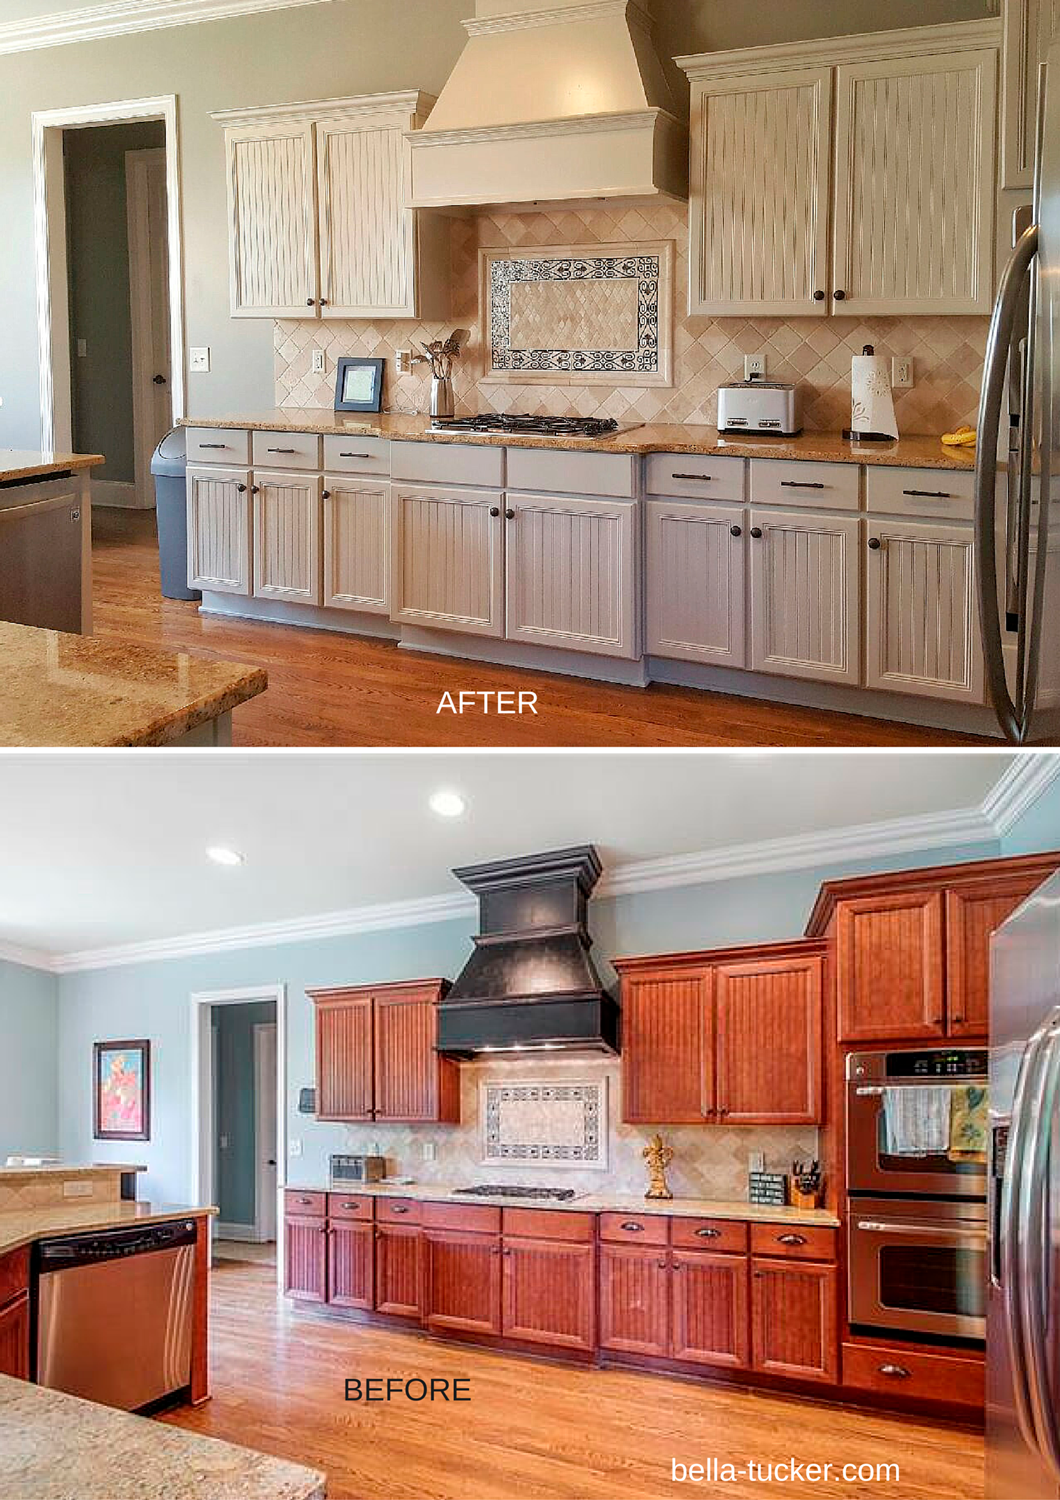 painting old kitchen cabinets before and after painted cabinets nashville tn before and after photos 24526